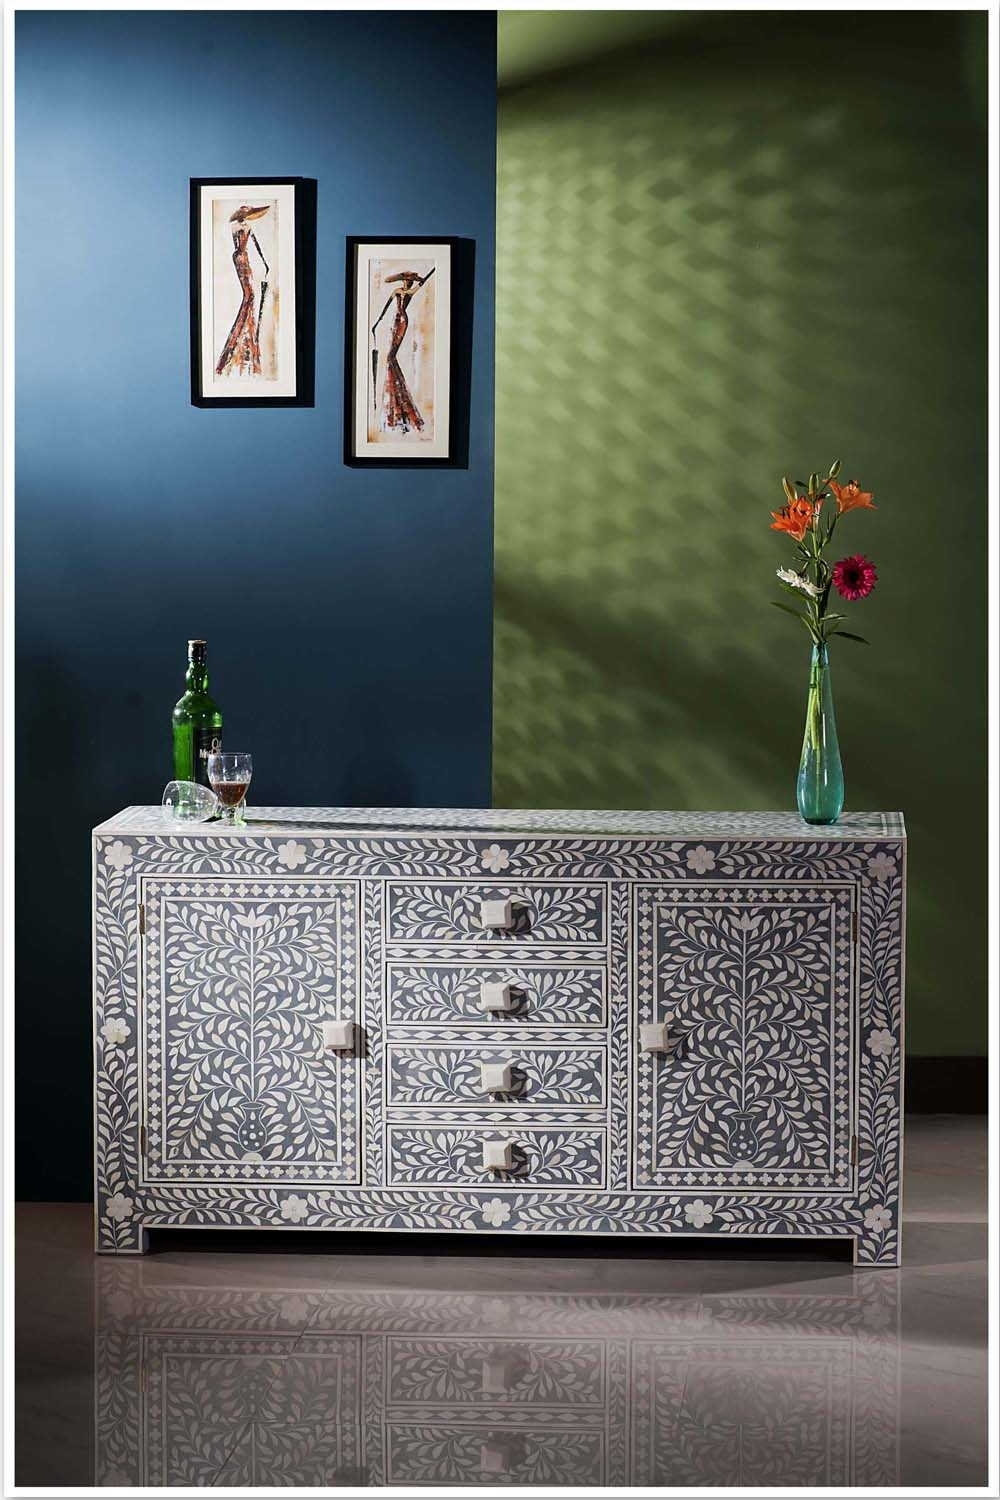 Bone Inlay Furniture Stores In Melbourne, Sydney, Australia, Brisbane intended for Geo Pattern Black And White Bone Inlay Sideboards (Image 11 of 30)